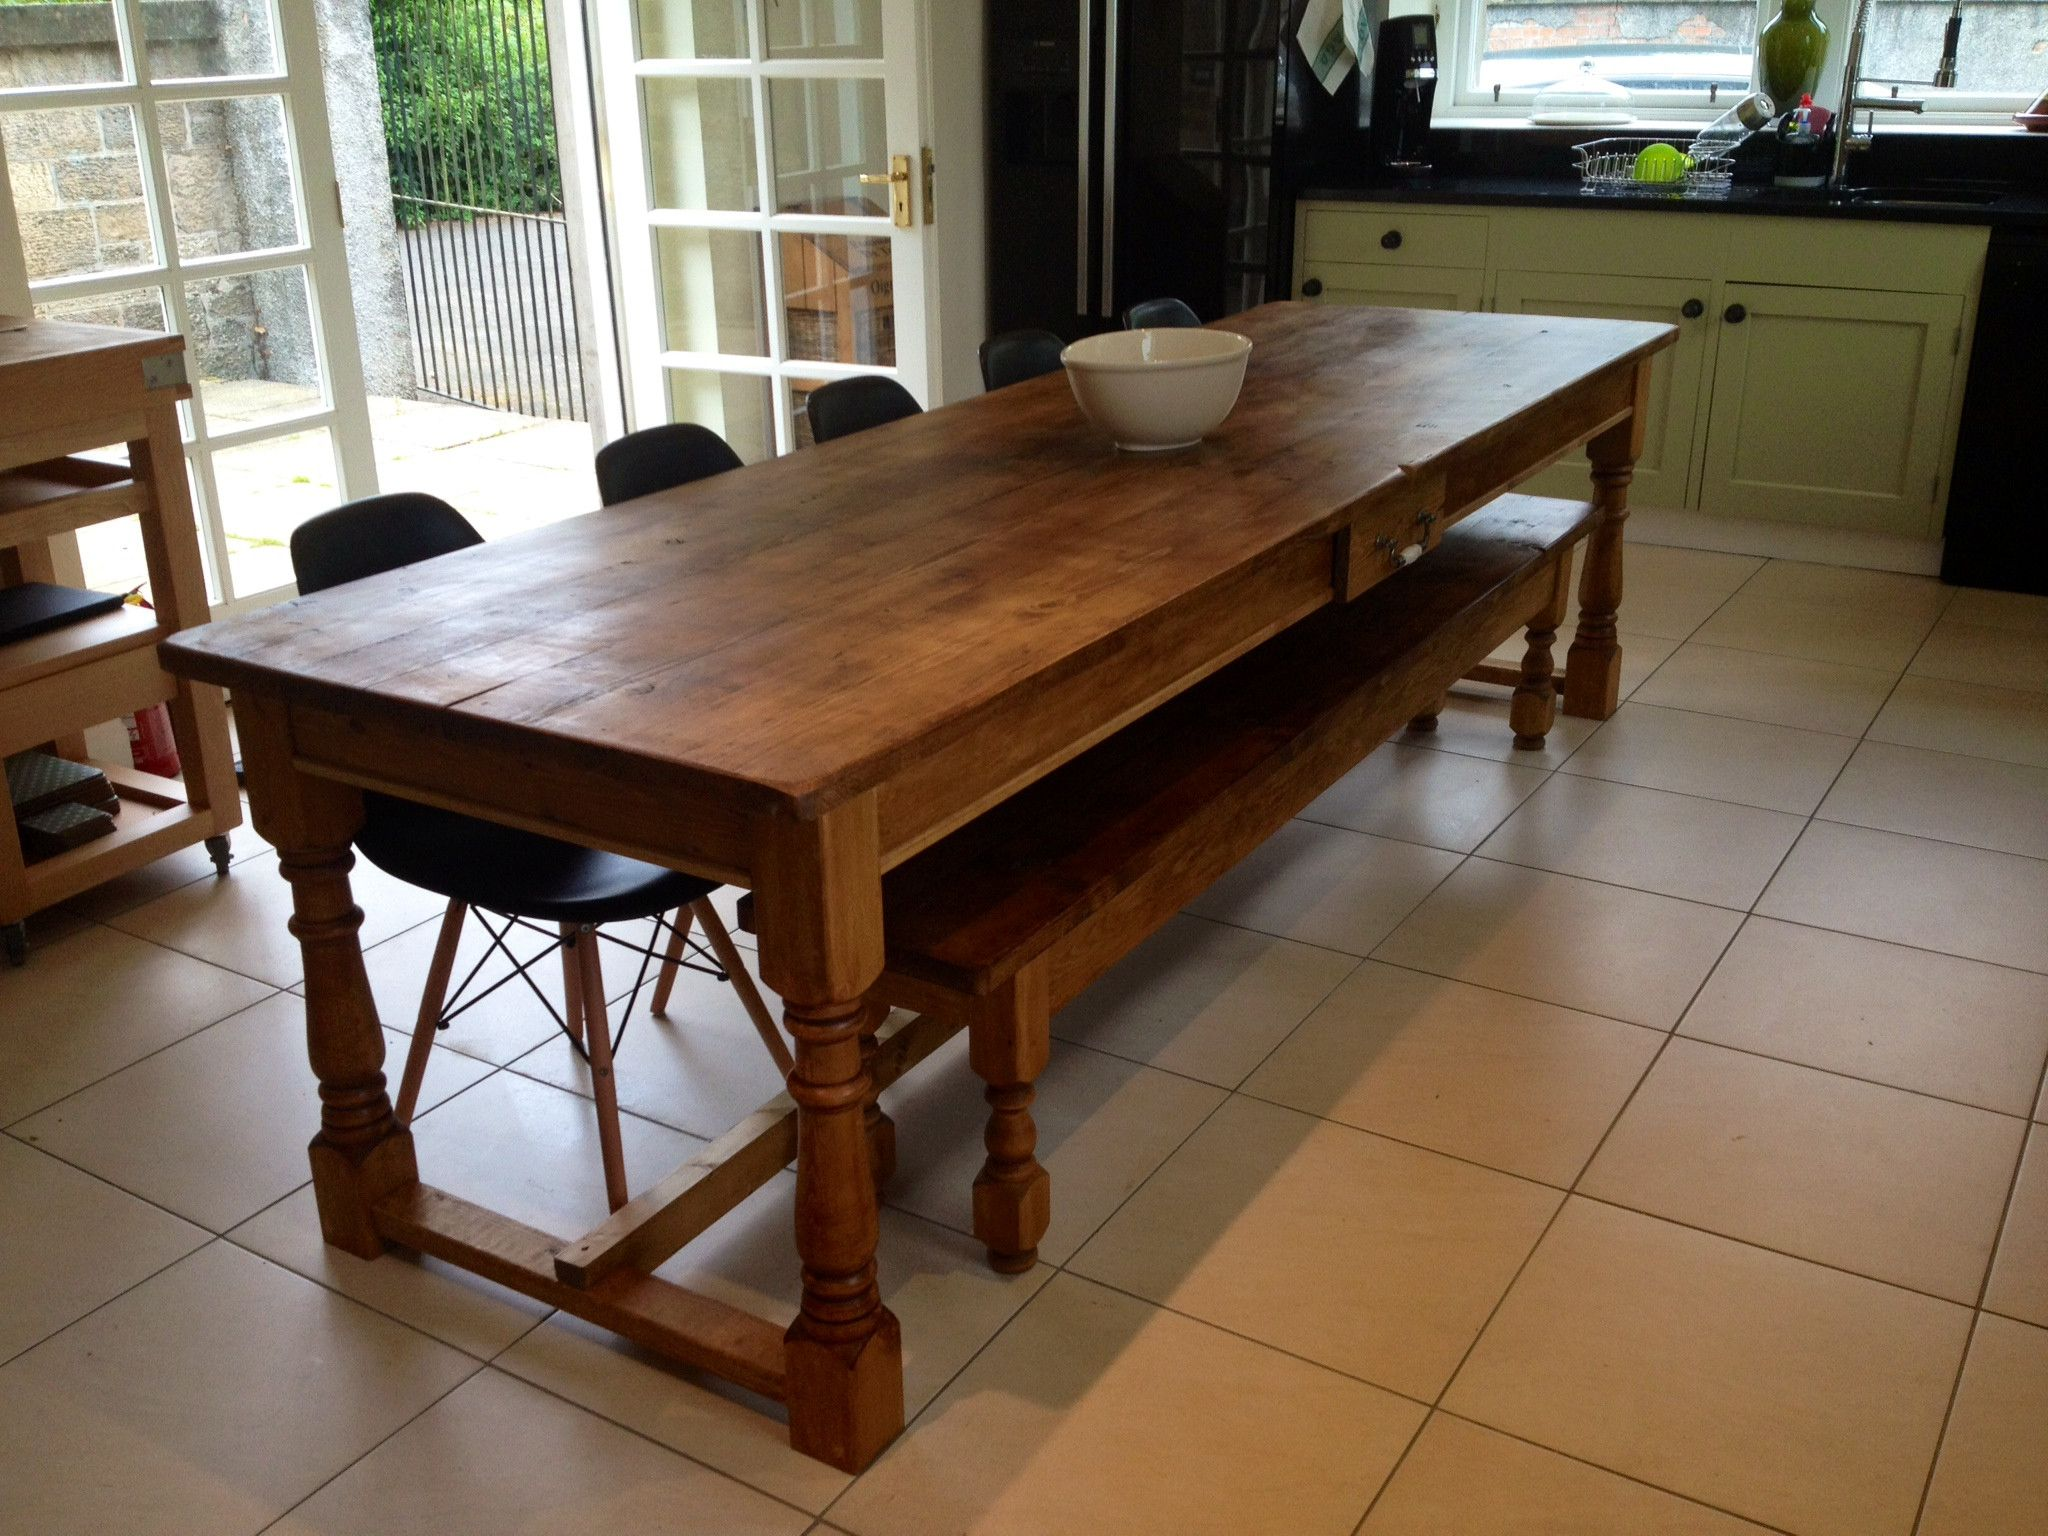 The Edinburgh Table OnlyRefectory Farmhouse Table Made From